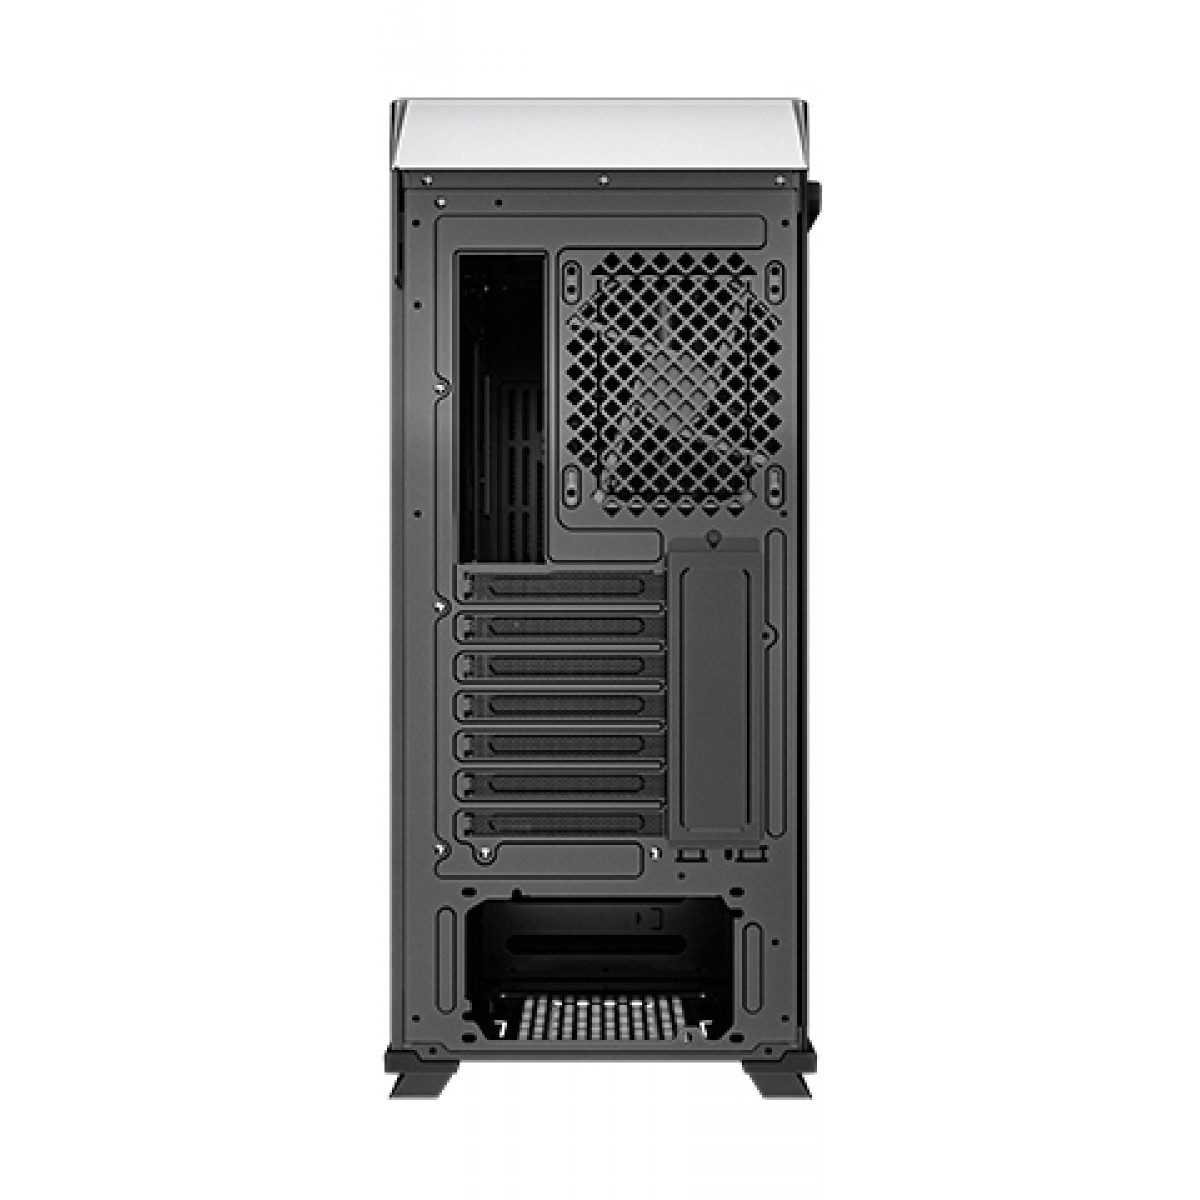 Gabinete Gamer DeepCool, CL500, Mid Tower, Vidro Temperado, Black, Sem Fan - R-CL500-BKNMA0N-C-1